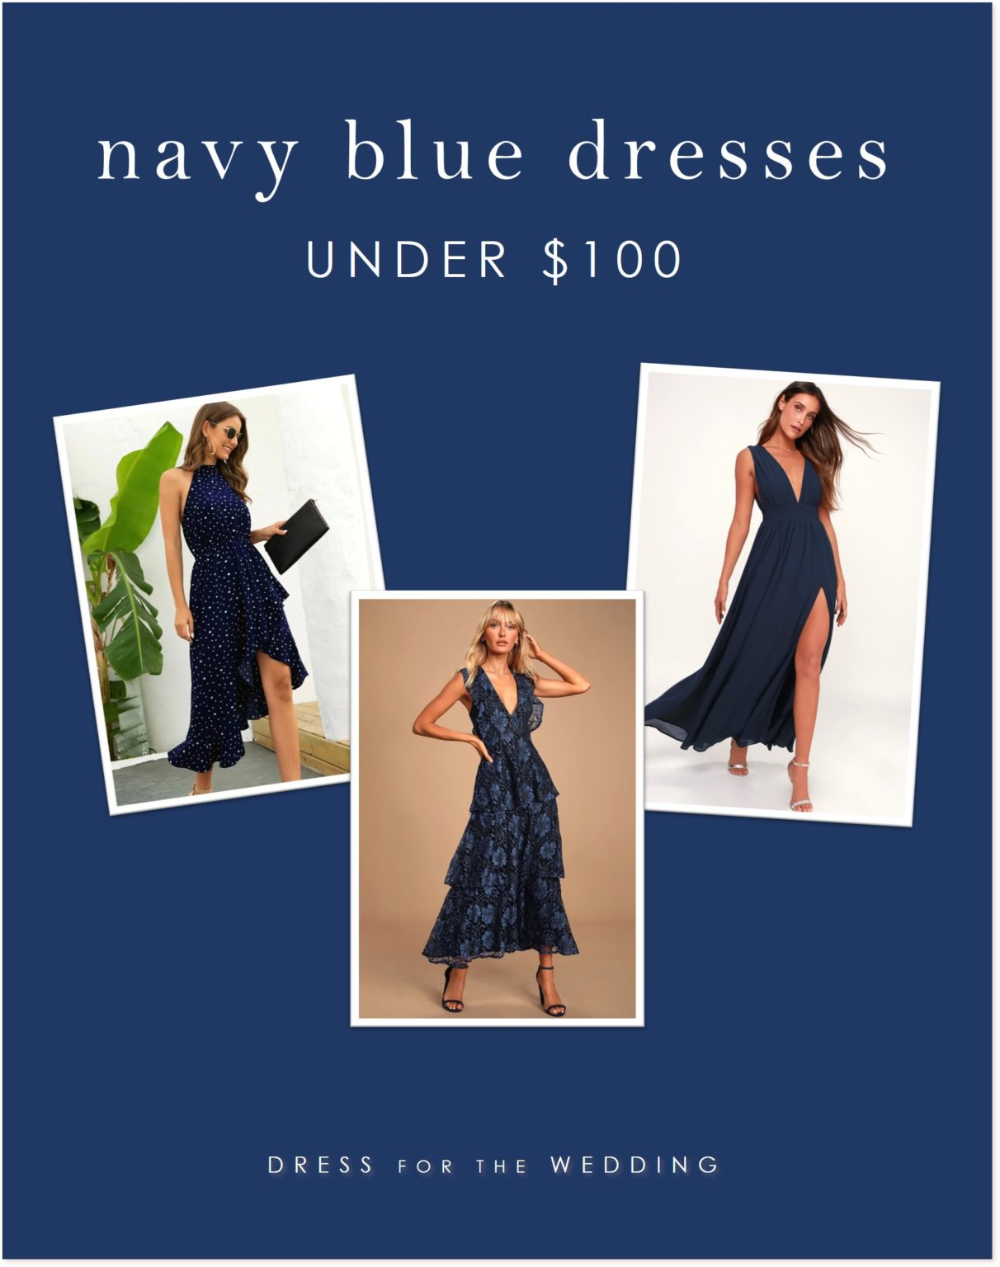 Navy Blue Dresses Under 100 Dress For The Wedding Anna Campbell Wedding Dress Mother Of The Bride Gown Formal Wedding Guest Dress [ 1267 x 1000 Pixel ]